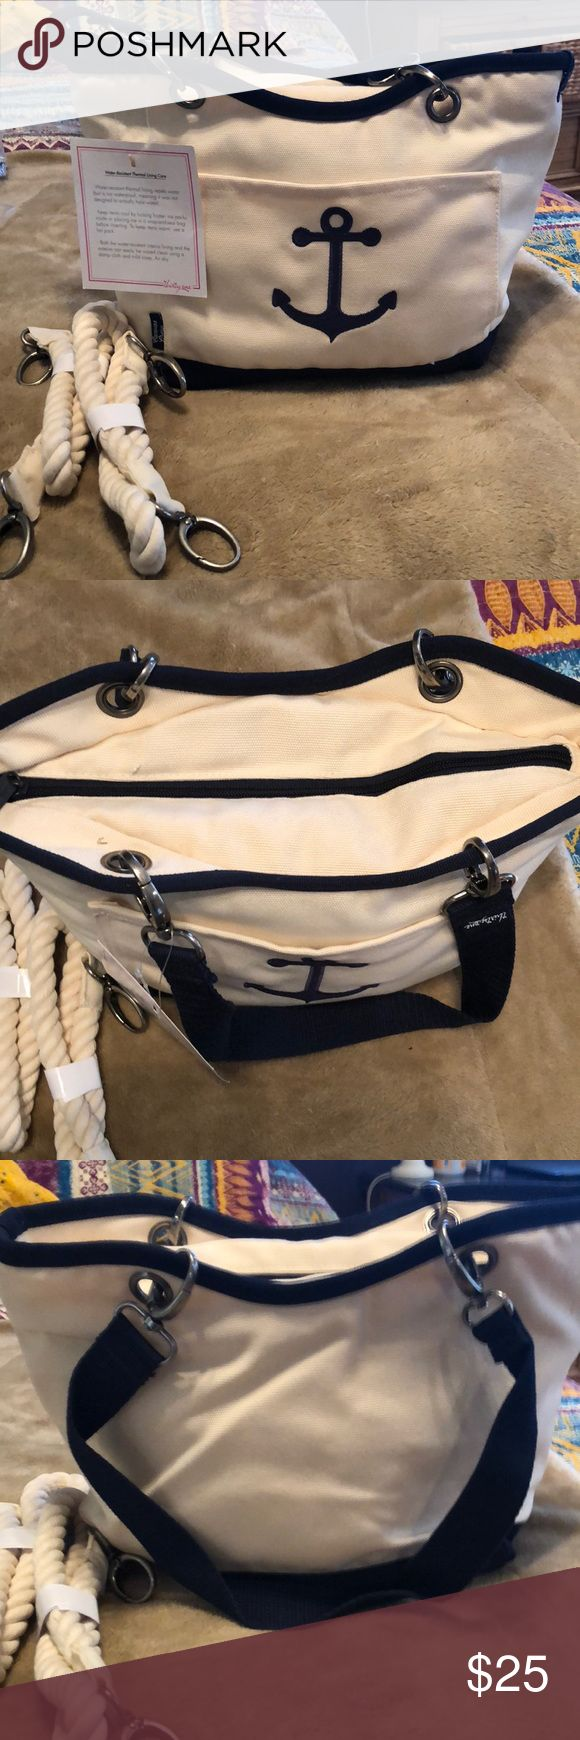 NWT thirty one canvas thermal bag NWT canvas anchor thirty one thermal lunch bag  Water resistant thermal lining  Comes with extra set of handles to change out to nautical rope ones  Super cute thirty-one Other